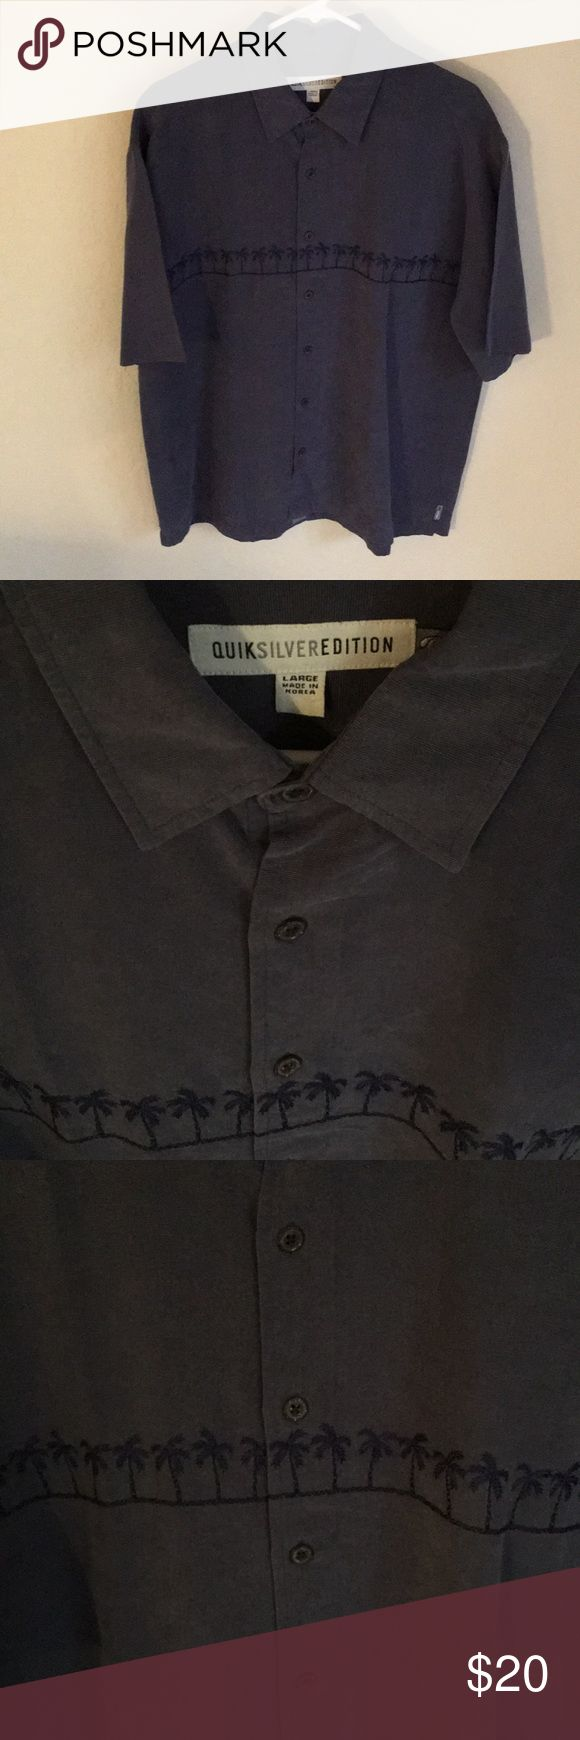 Quicksilver Button Up In Excellent Condition! Quicksilver Button Up In Excellent Condition! Nice lighter blue with navy blue palm trees embroidered along the chest. Beautiful Shirt! Great for warm climate & tropical events! From my hubby's collection. quicksilver Shirts Casual Button Down Shirts